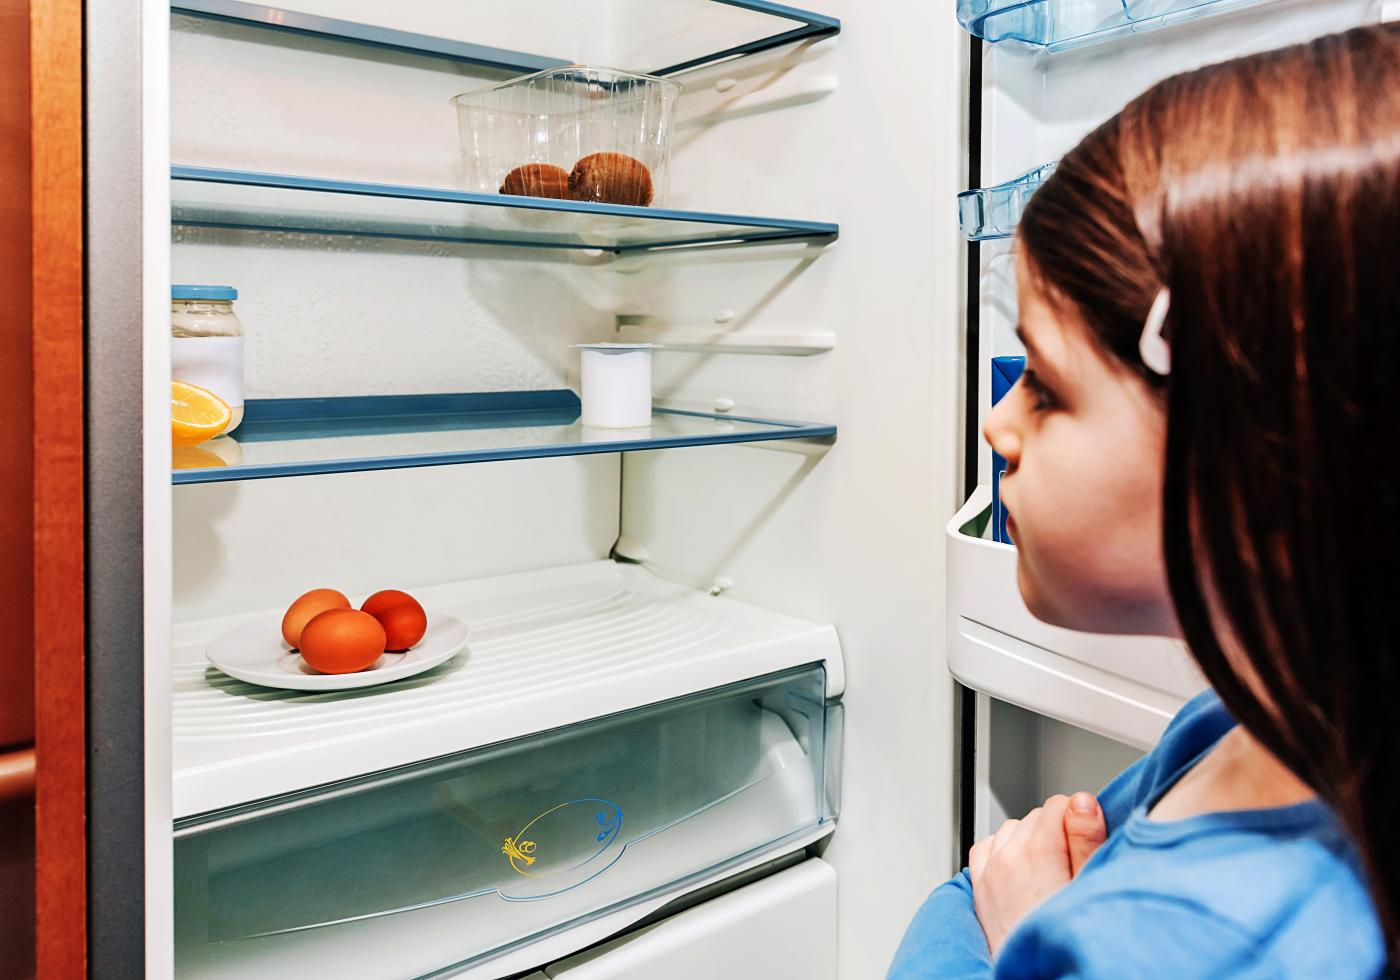 Young girl looks into an empty fridge